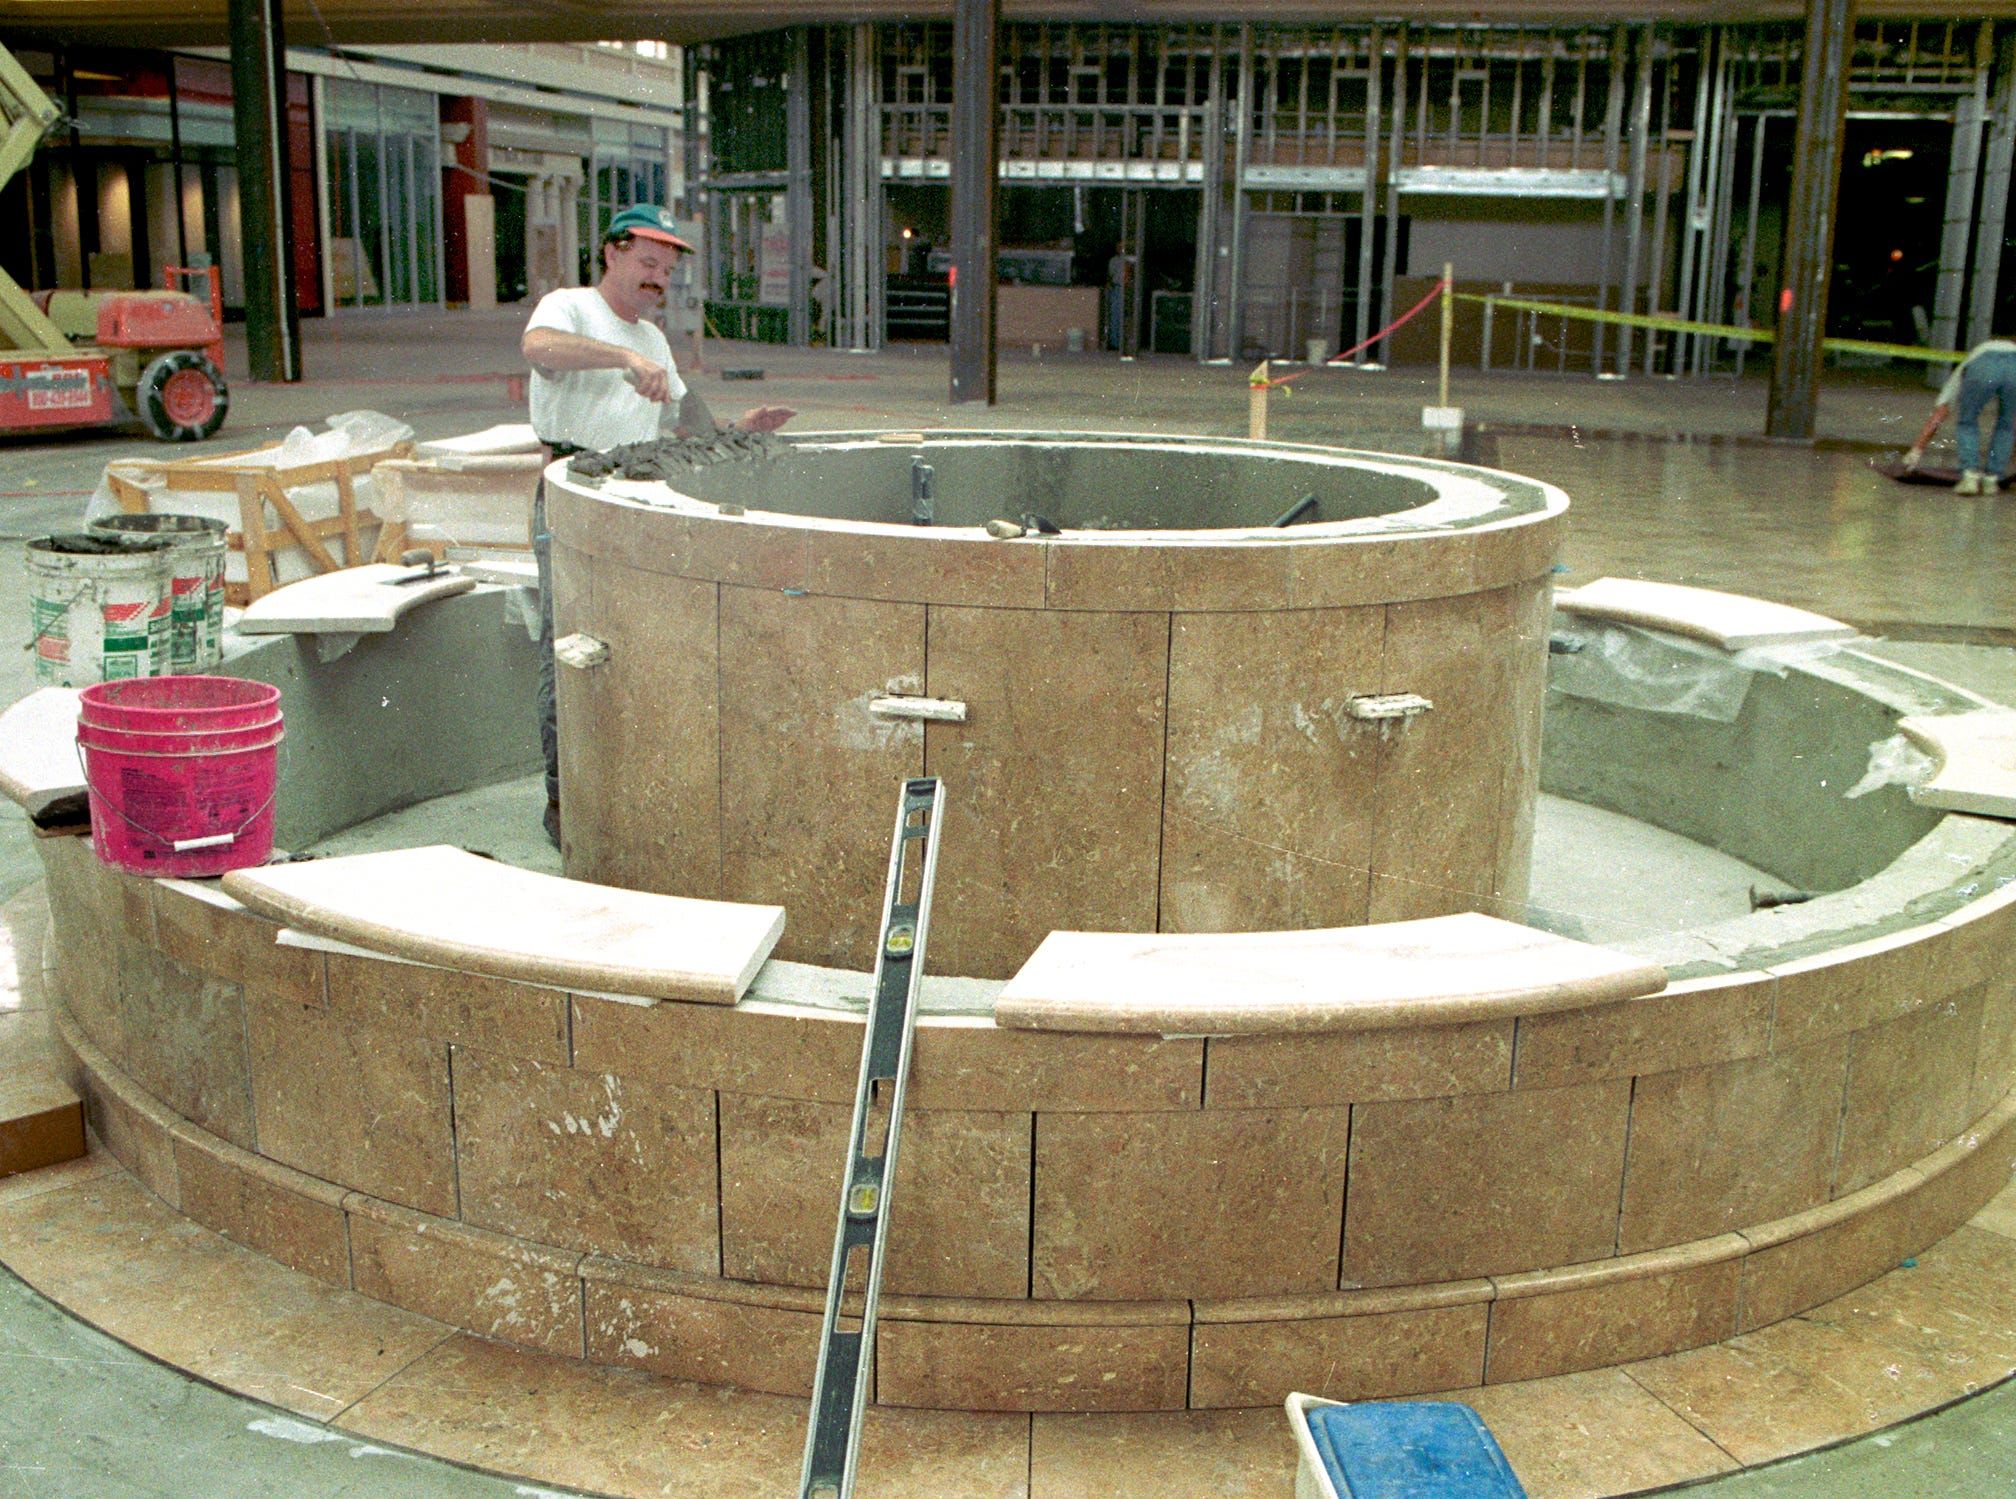 October, 1996 - Pasqual Jimenez of Total Flooring was tasked with continuing to put together the food court fountain at the new Indian River Mall. When the Indian River Mall was finished that year, it was a regional mall built slightly larger than Melbourne Square Mall and the same size as Treasure Coast Square in Jensen Beach.